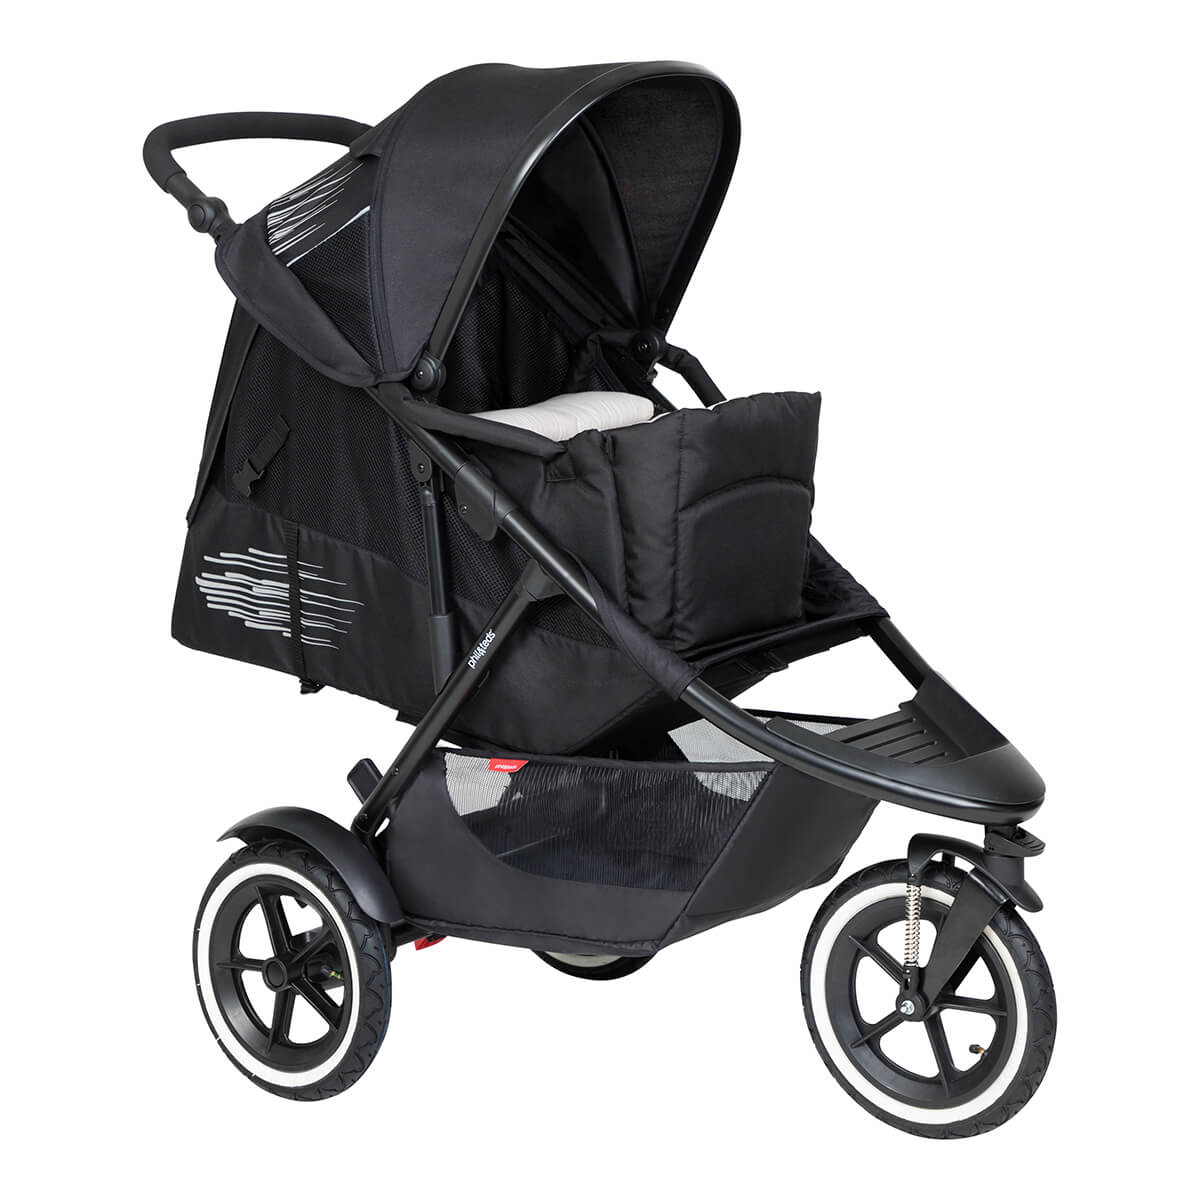 https://cdn.accentuate.io/4509866524769/19793938874538/philteds-sport-buggy-with-cocoon-full-recline-v1626485300397.jpg?1200x1200